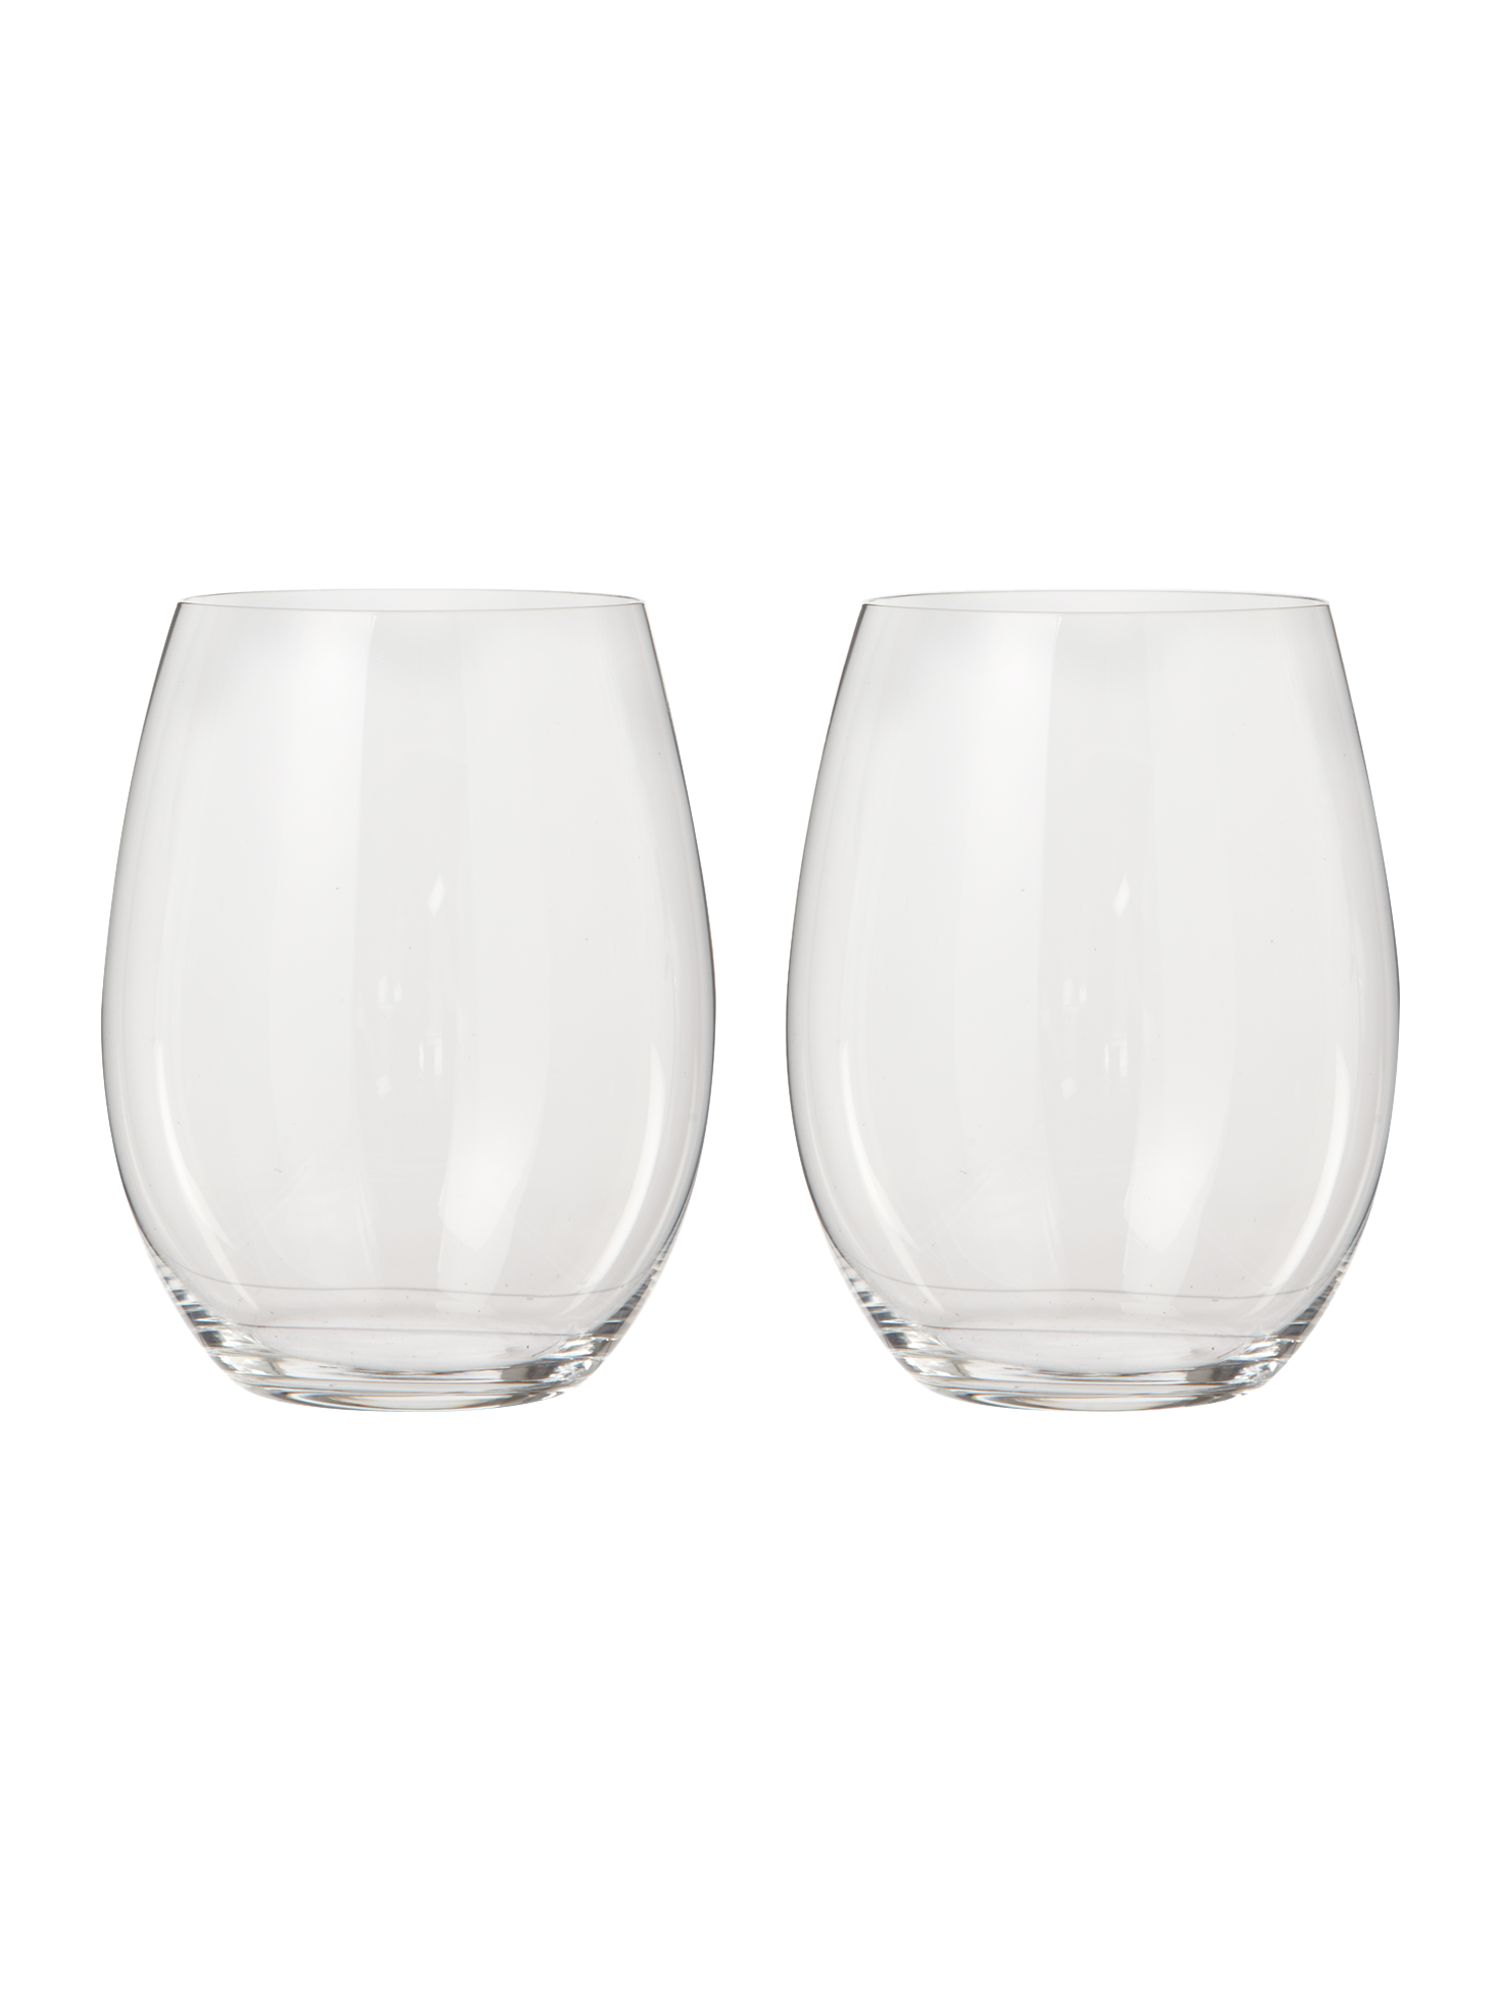 Cabernet merlot tumbler glasses, box of 2